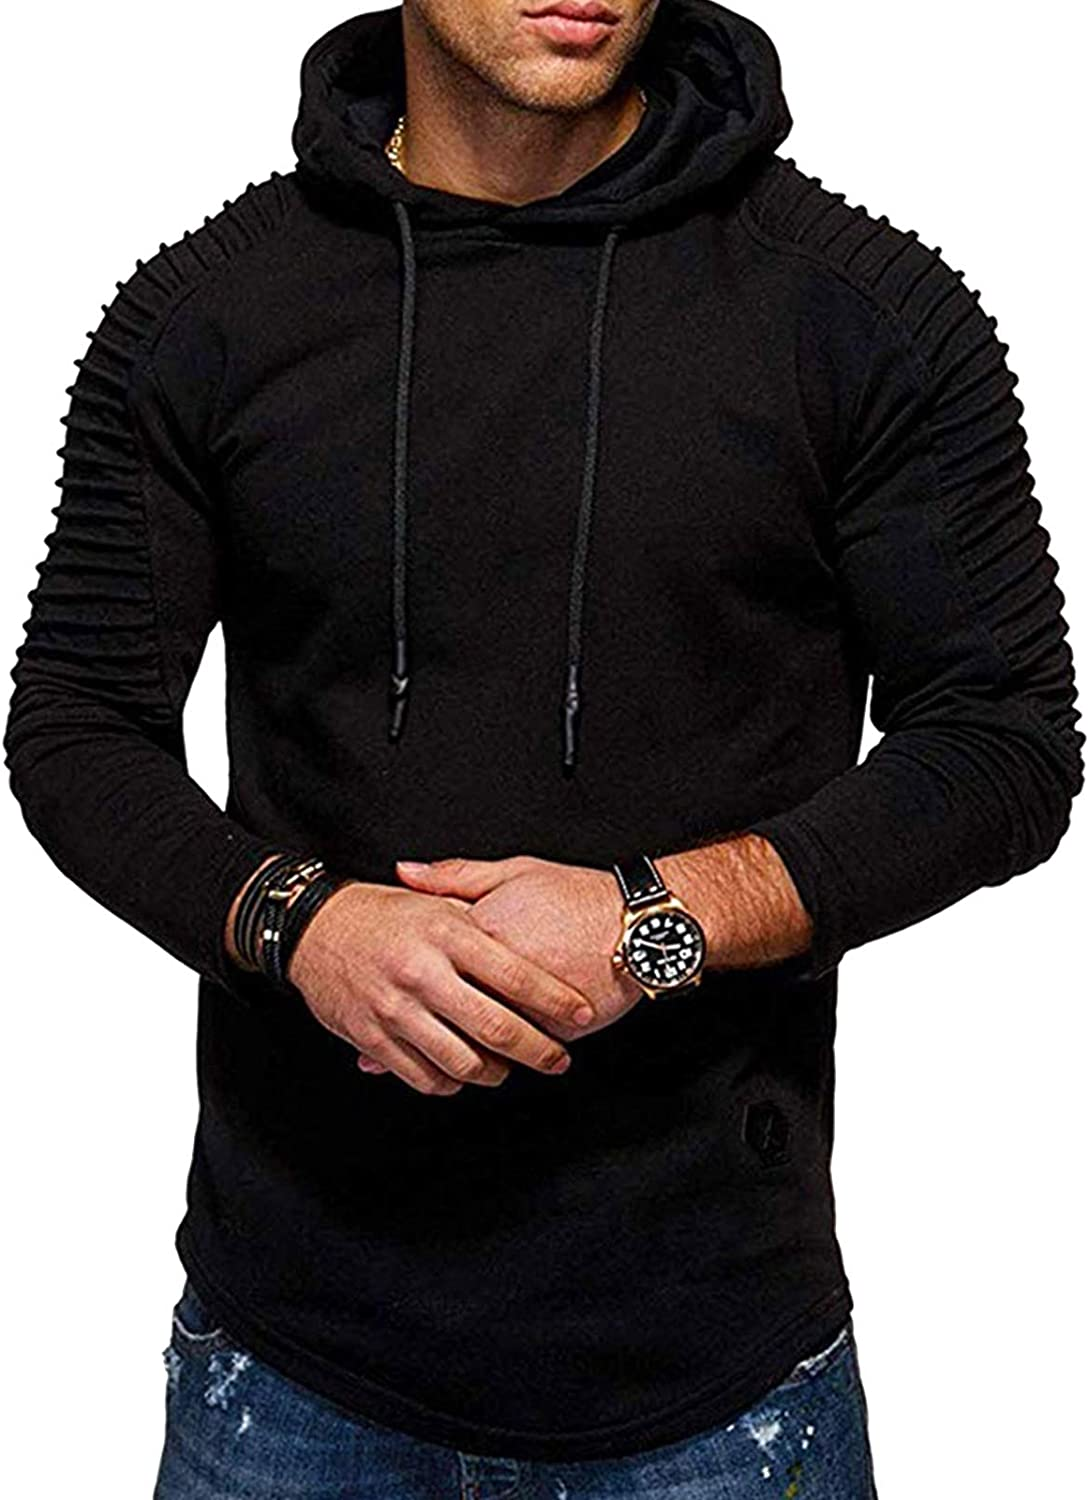 Mens Fashion Athletic Hoodie Workout Hooded Pullover Solid Color Fleece Sweater